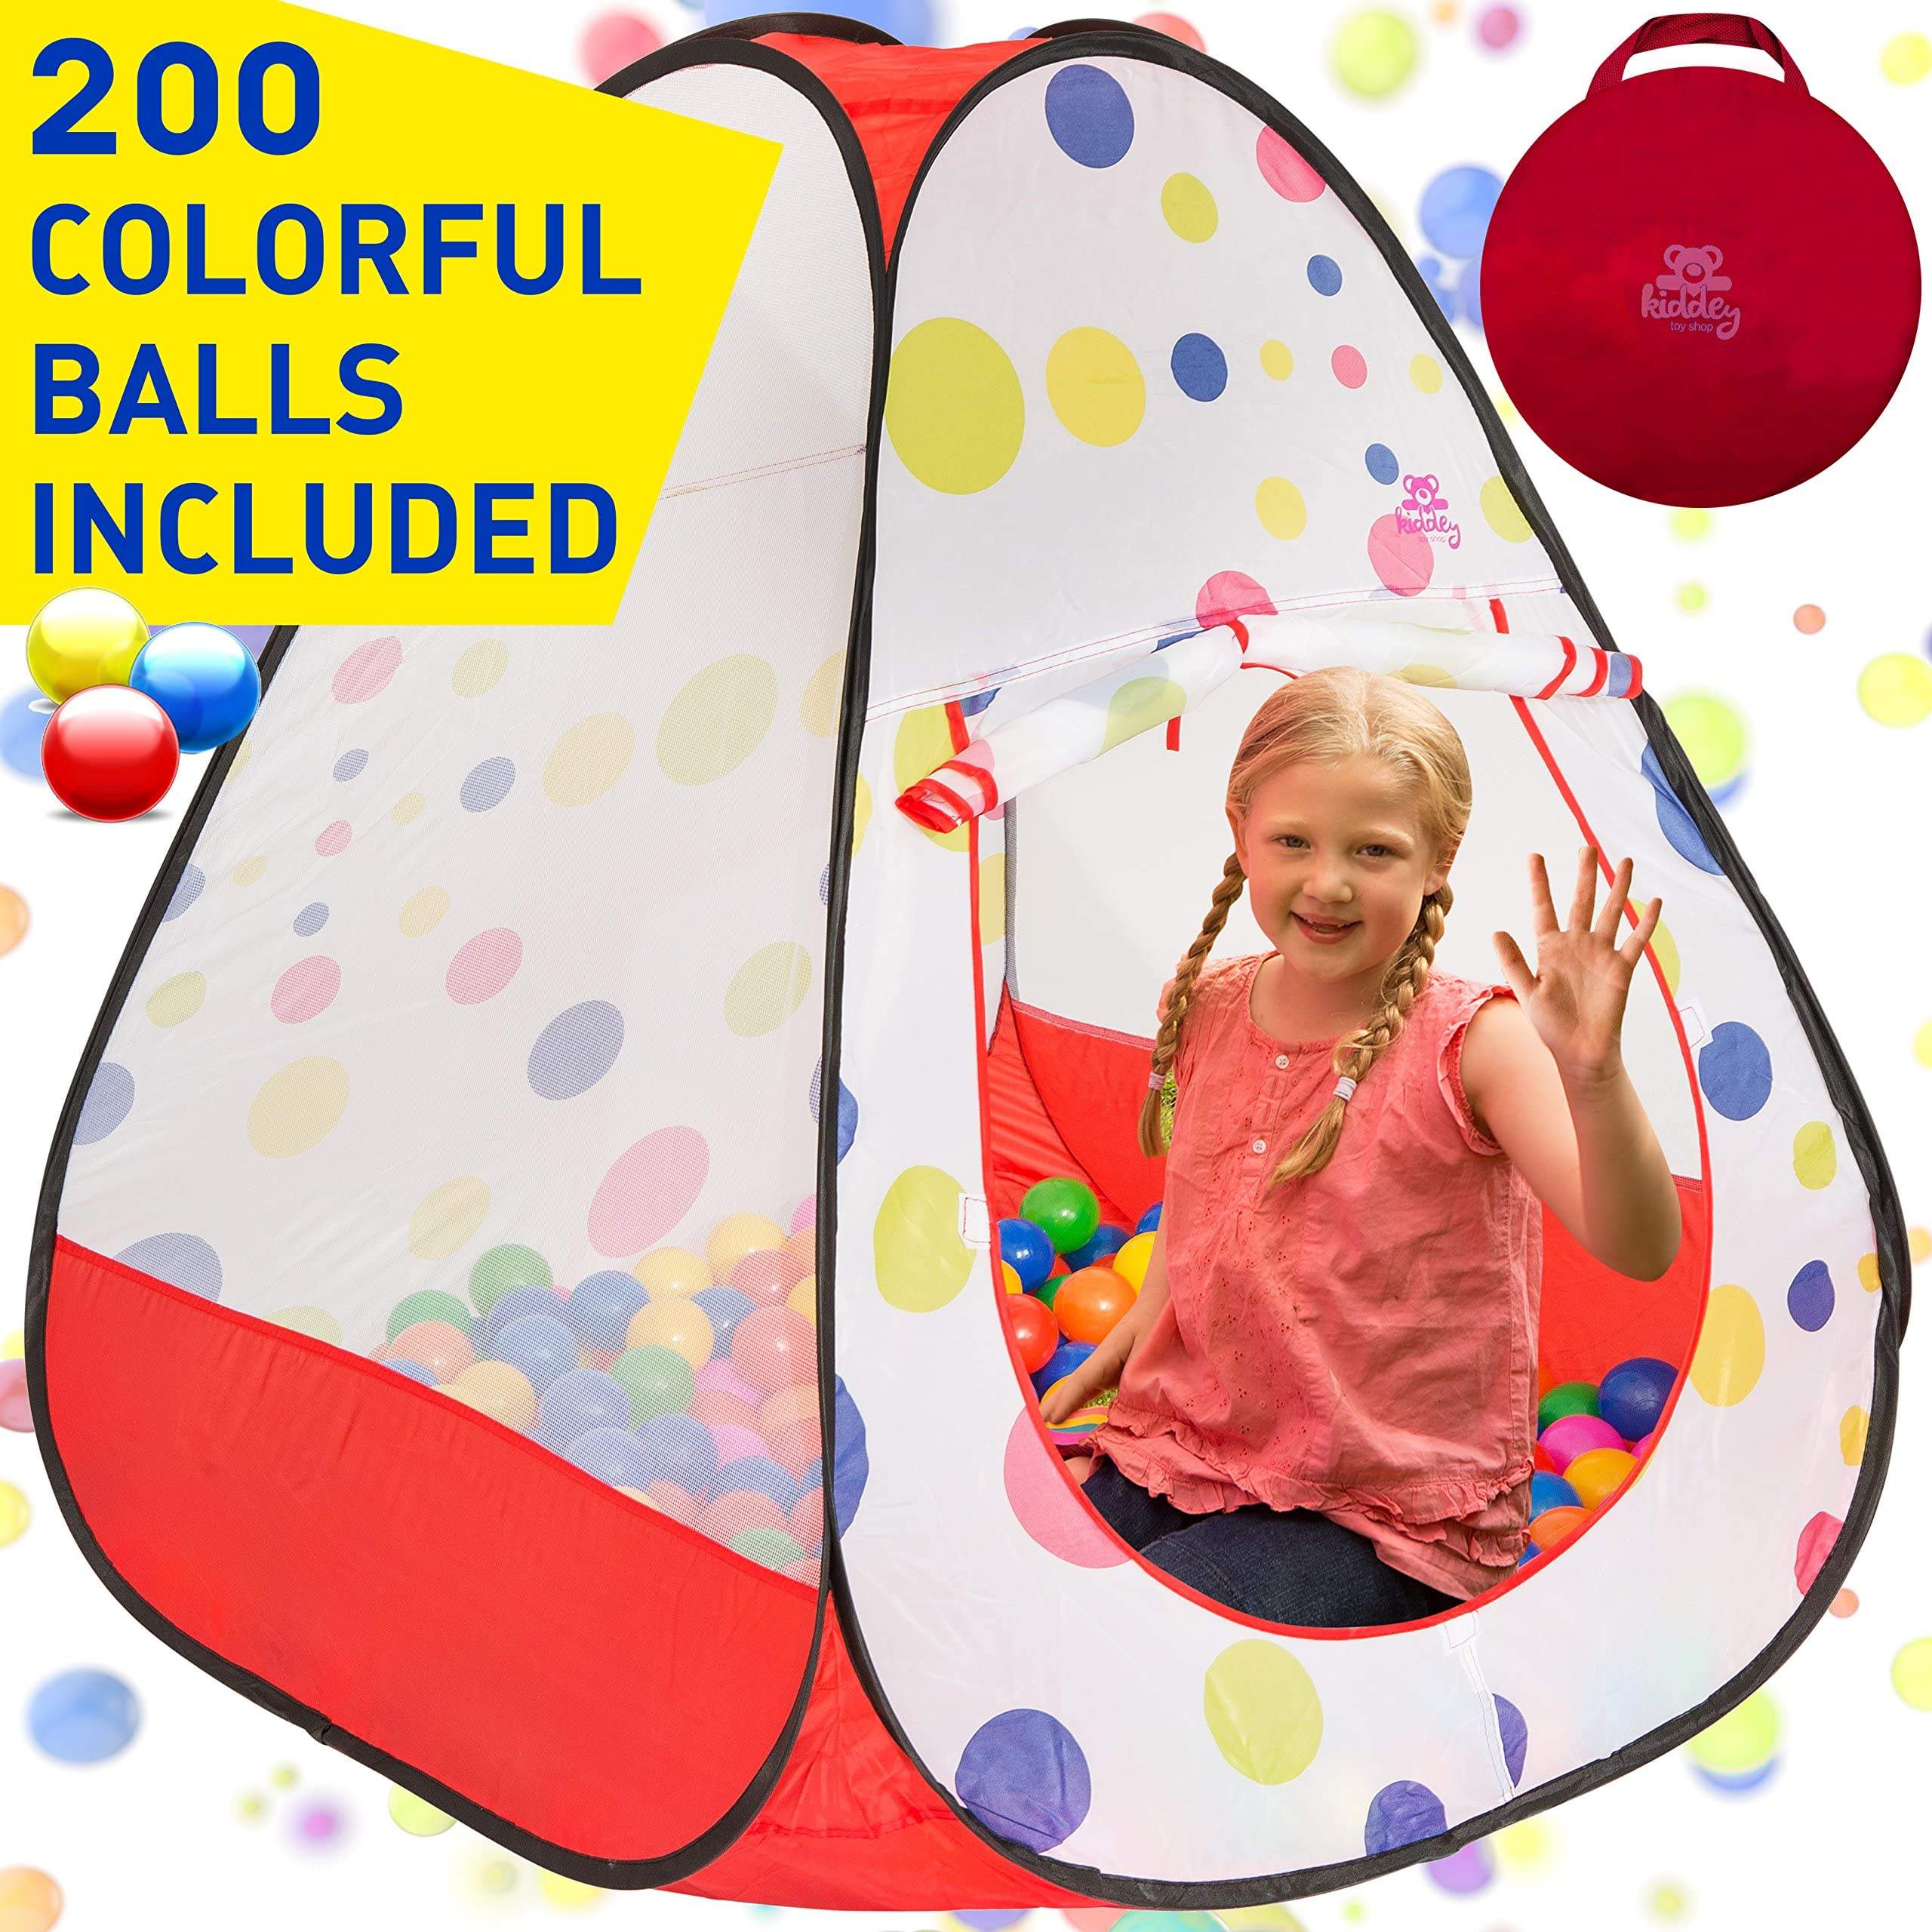 Kiddey Ball Pit Play Tent with 200 Balls Pop Up Triangle Kids Play Tent u2013  sc 1 st  Amazon.com & Amazon.com: Play Tents u0026 Tunnels: Toys u0026 Games: Play Tents Play ...